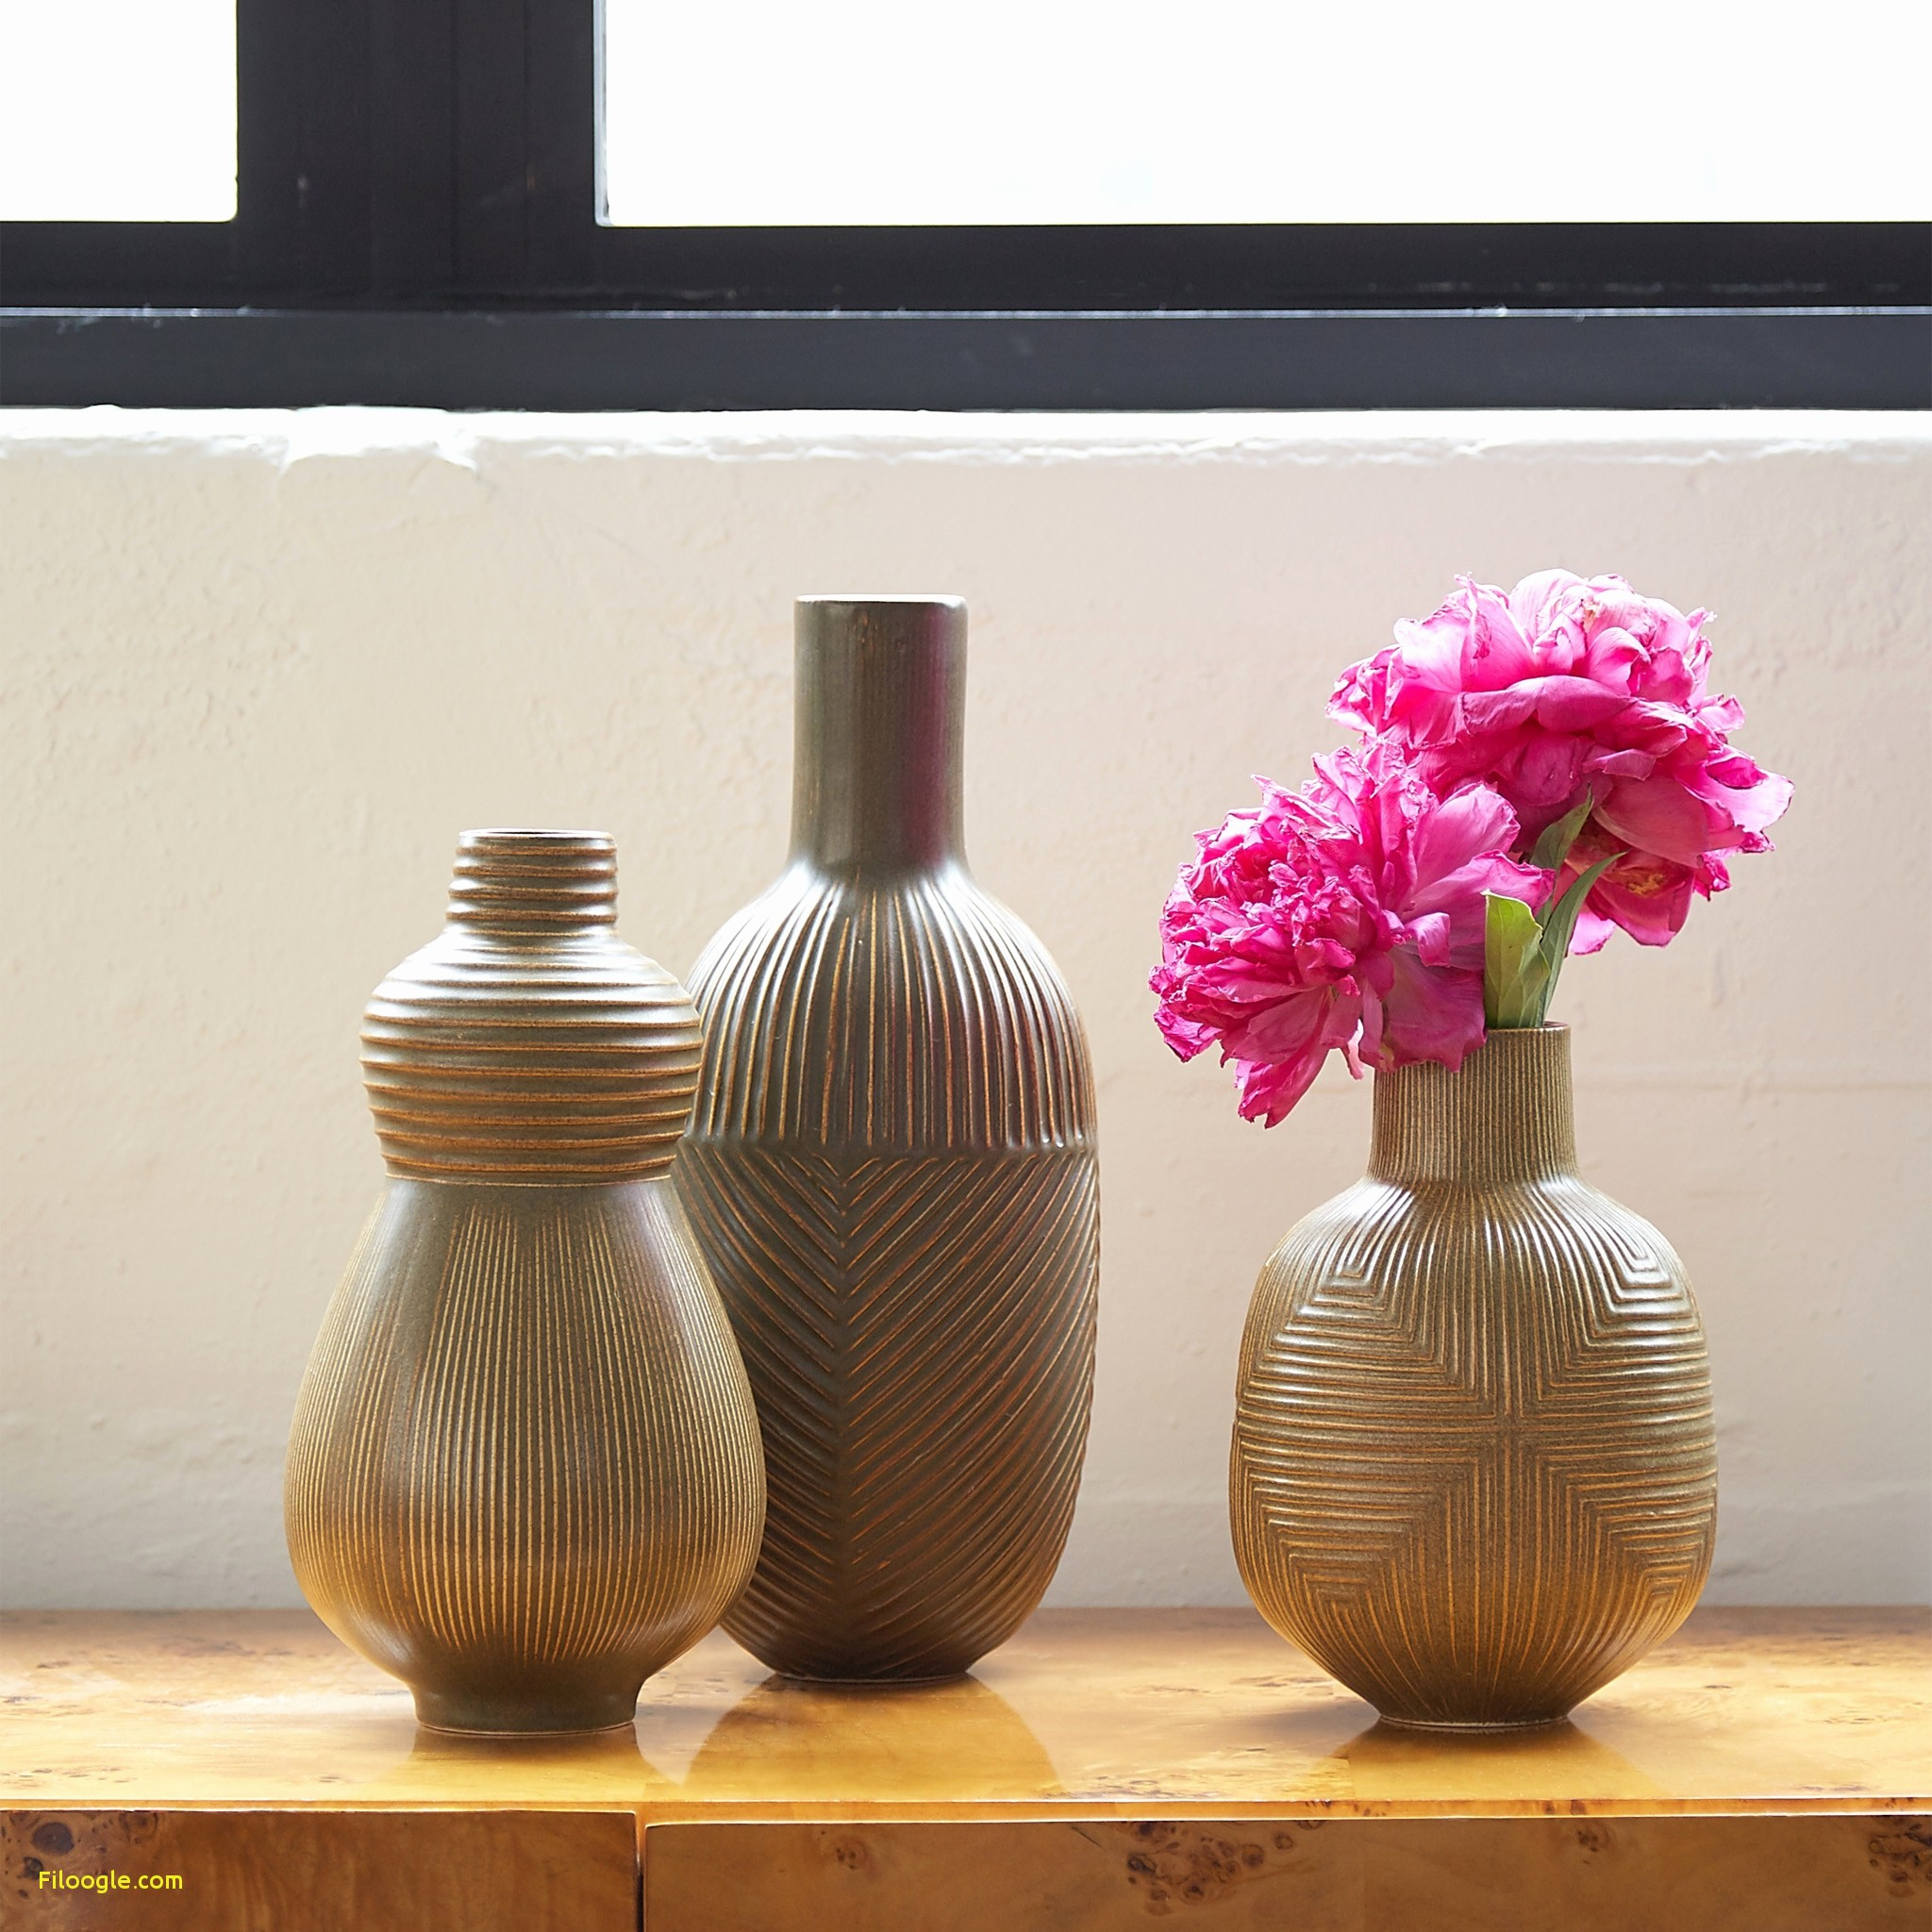 H Et H Home Unique Photographie Home Decoration Stores Lovely African Home Decor Best Vases